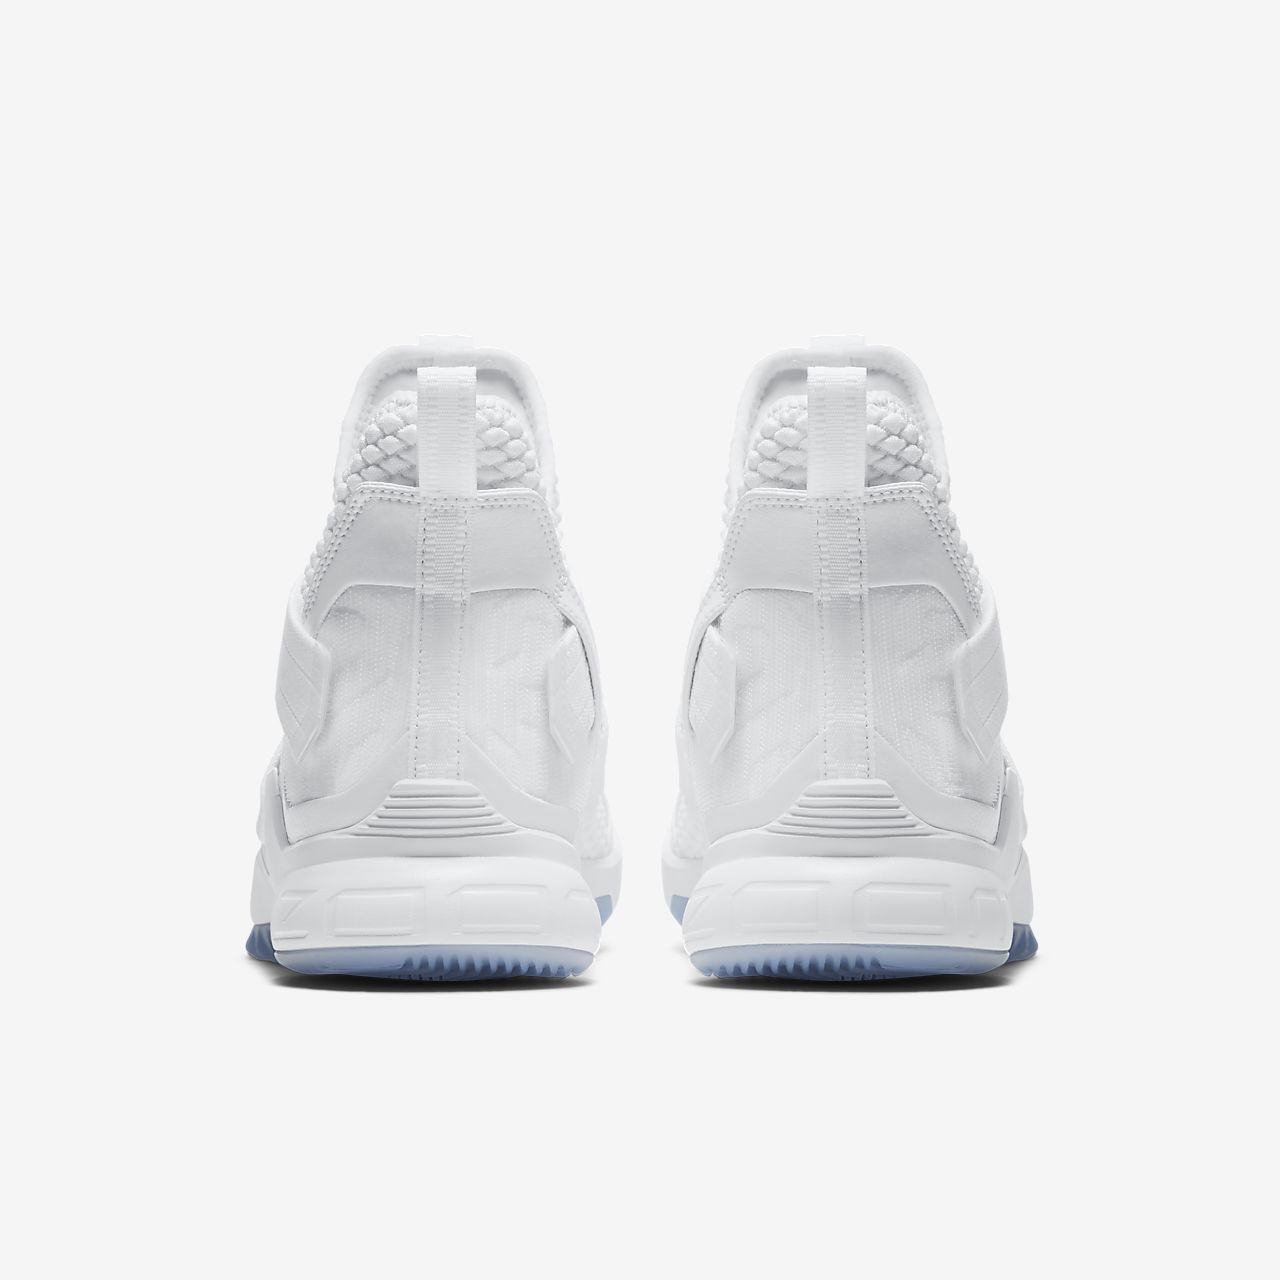 check out 032b3 b88f4 Low Resolution LeBron Soldier 12 SFG Basketbalschoen LeBron Soldier 12 SFG  Basketbalschoen